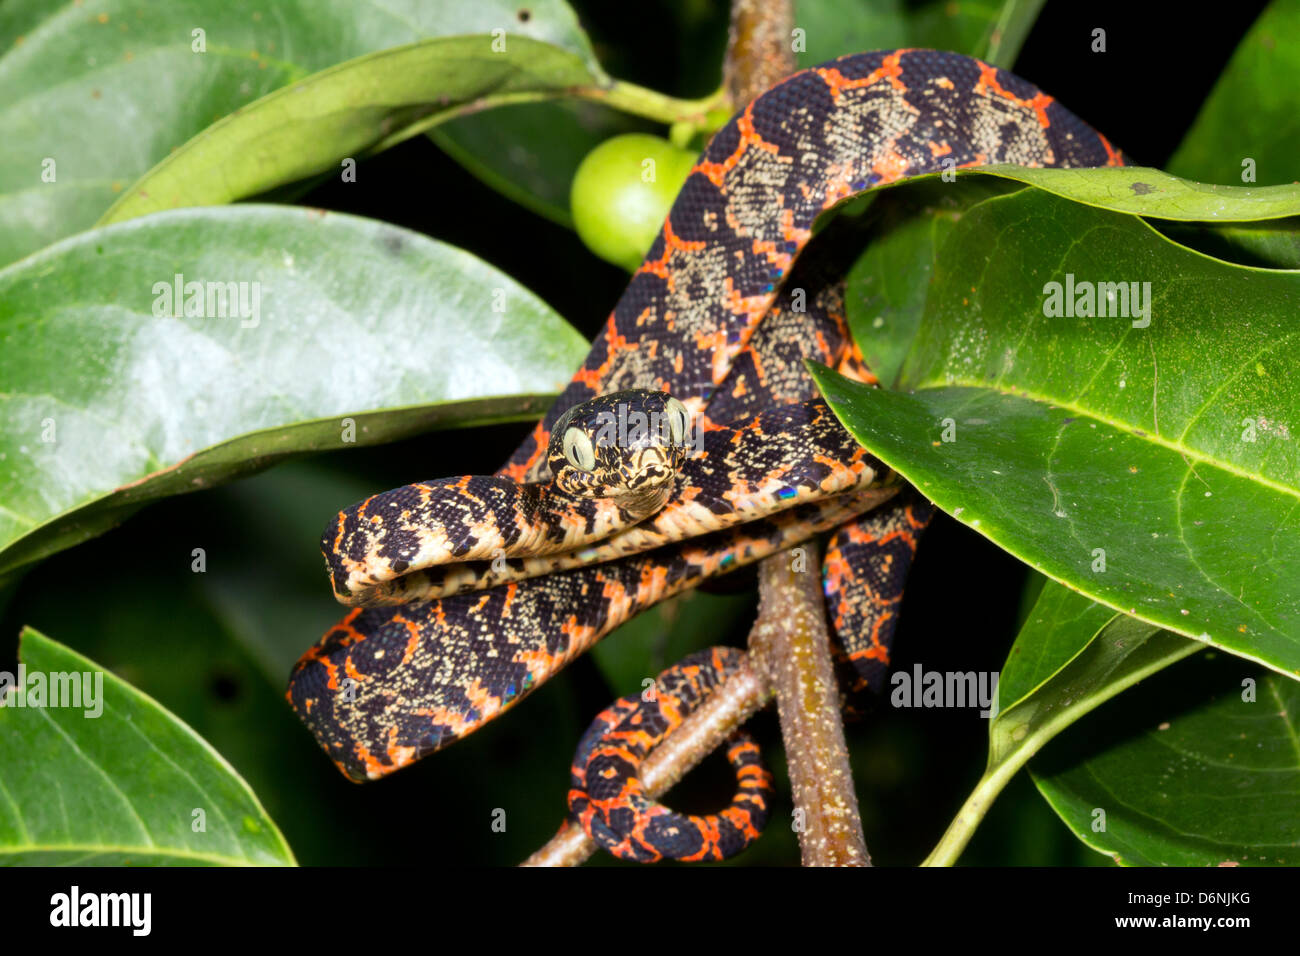 Corallus Stock Photos & Corallus Stock Images - Alamy